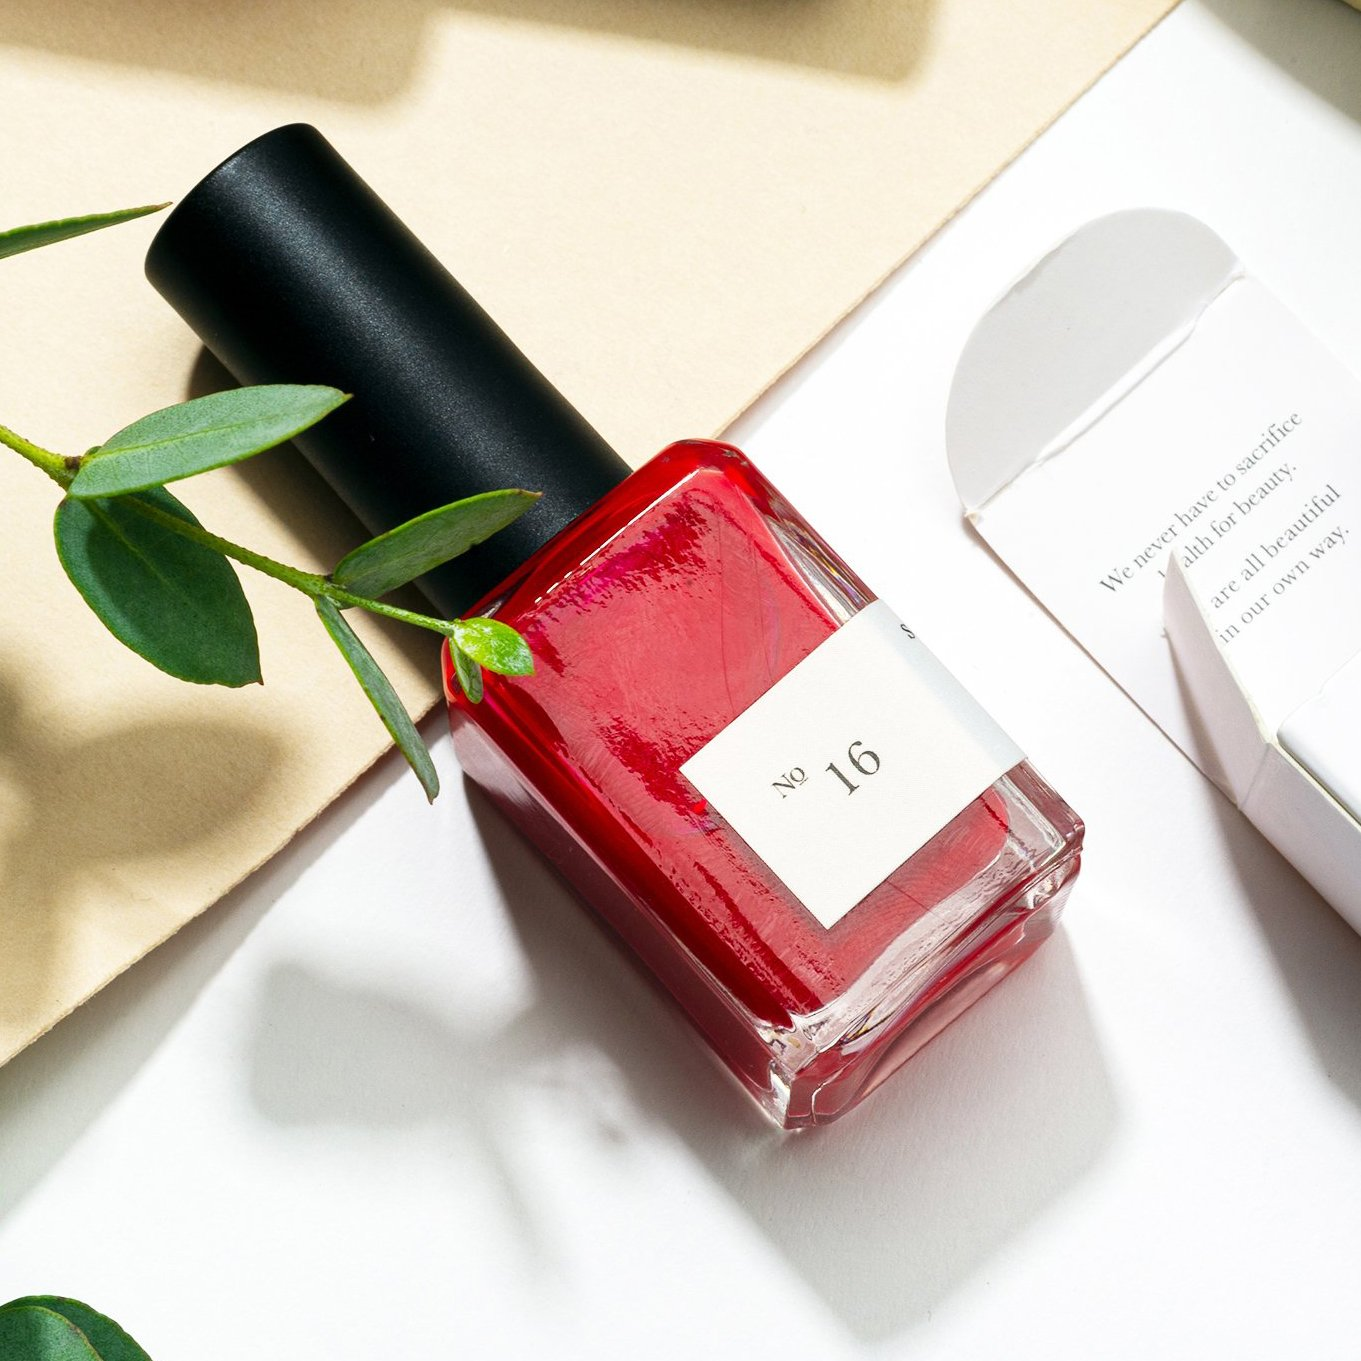 Elate Ethical Marketplace Sundays red Nailpolish n.16 - holiday christmas gift giving as a stocking stuffer. Cruelty free, toxin free and sustainable.